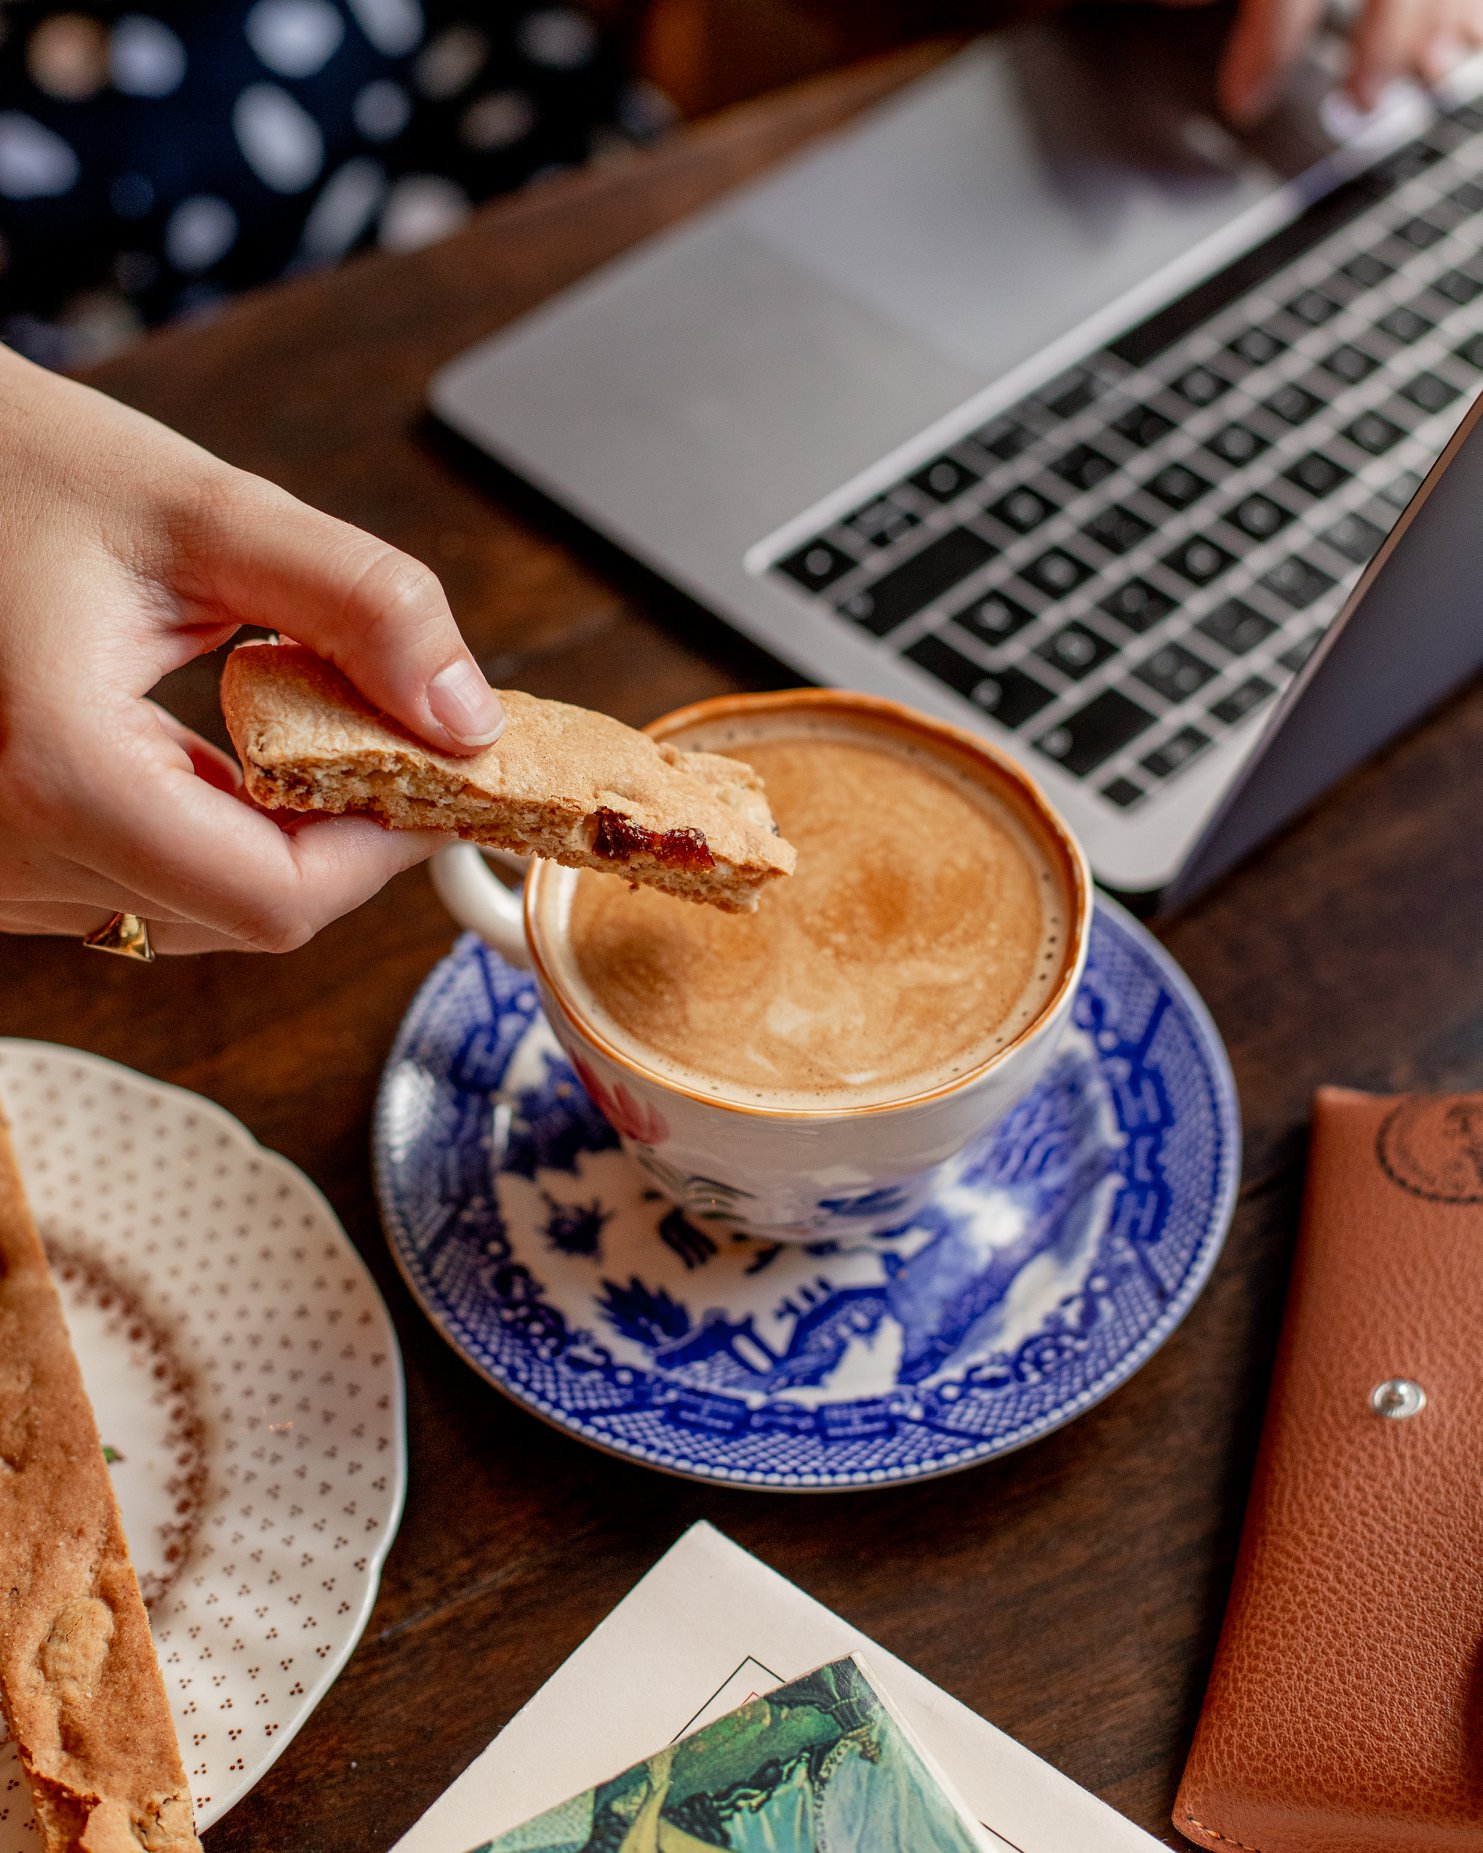 dipping cookie in coffee with laptop in the background